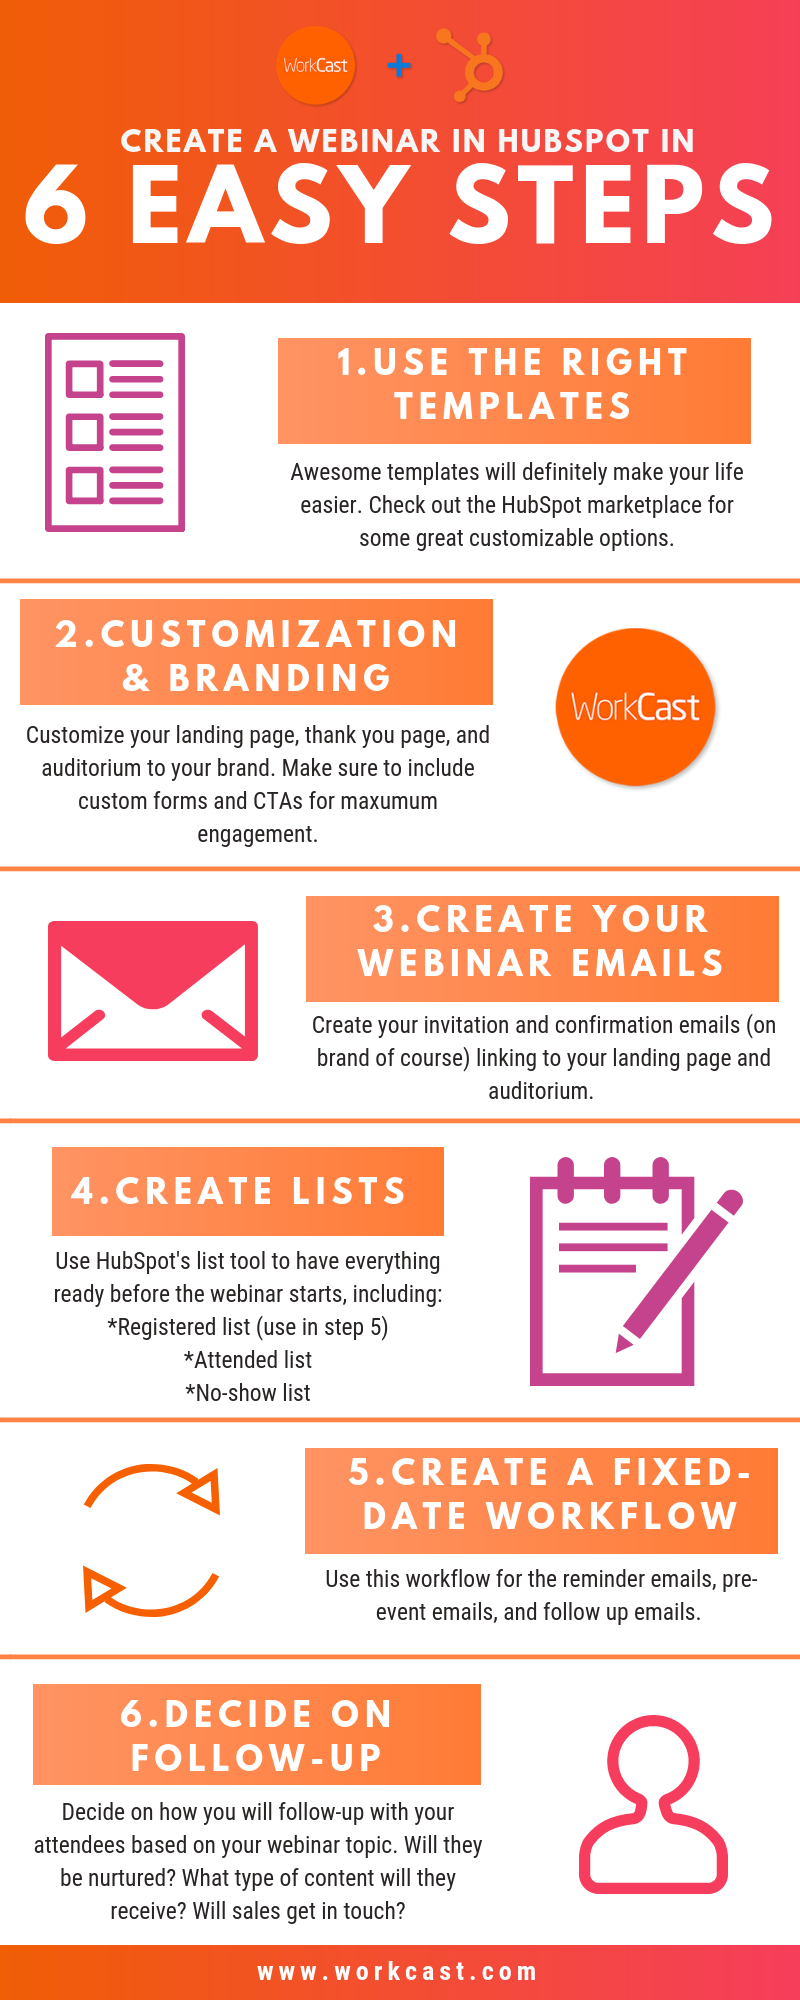 how-to-create-a-webinar-infographic